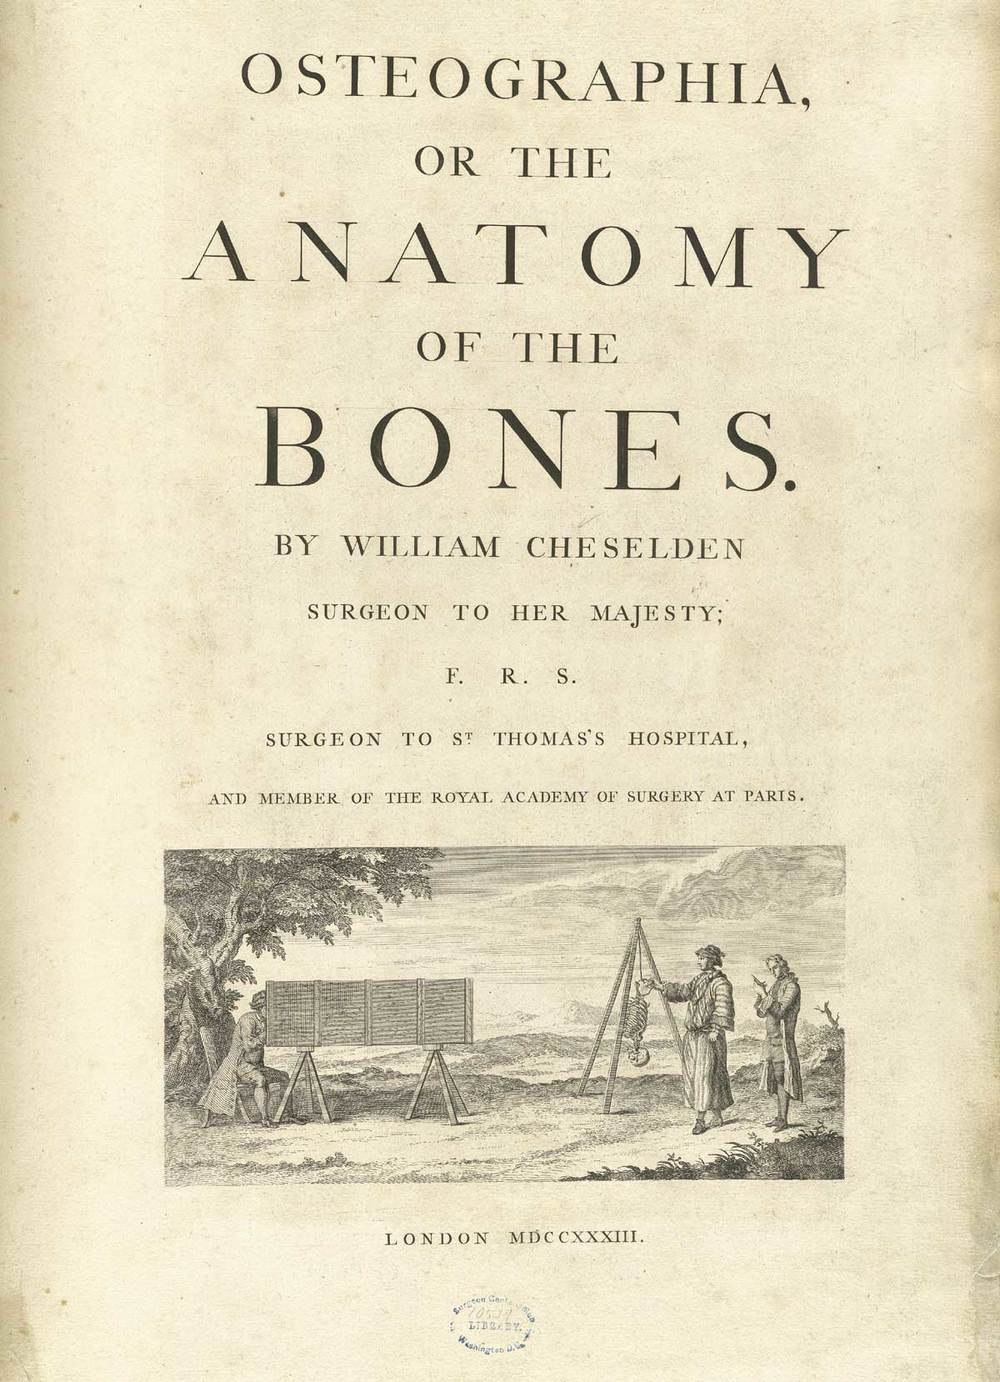 Cheselden,  Osteographia  (1728), Title Page.  Image from  National Library of Medicine.